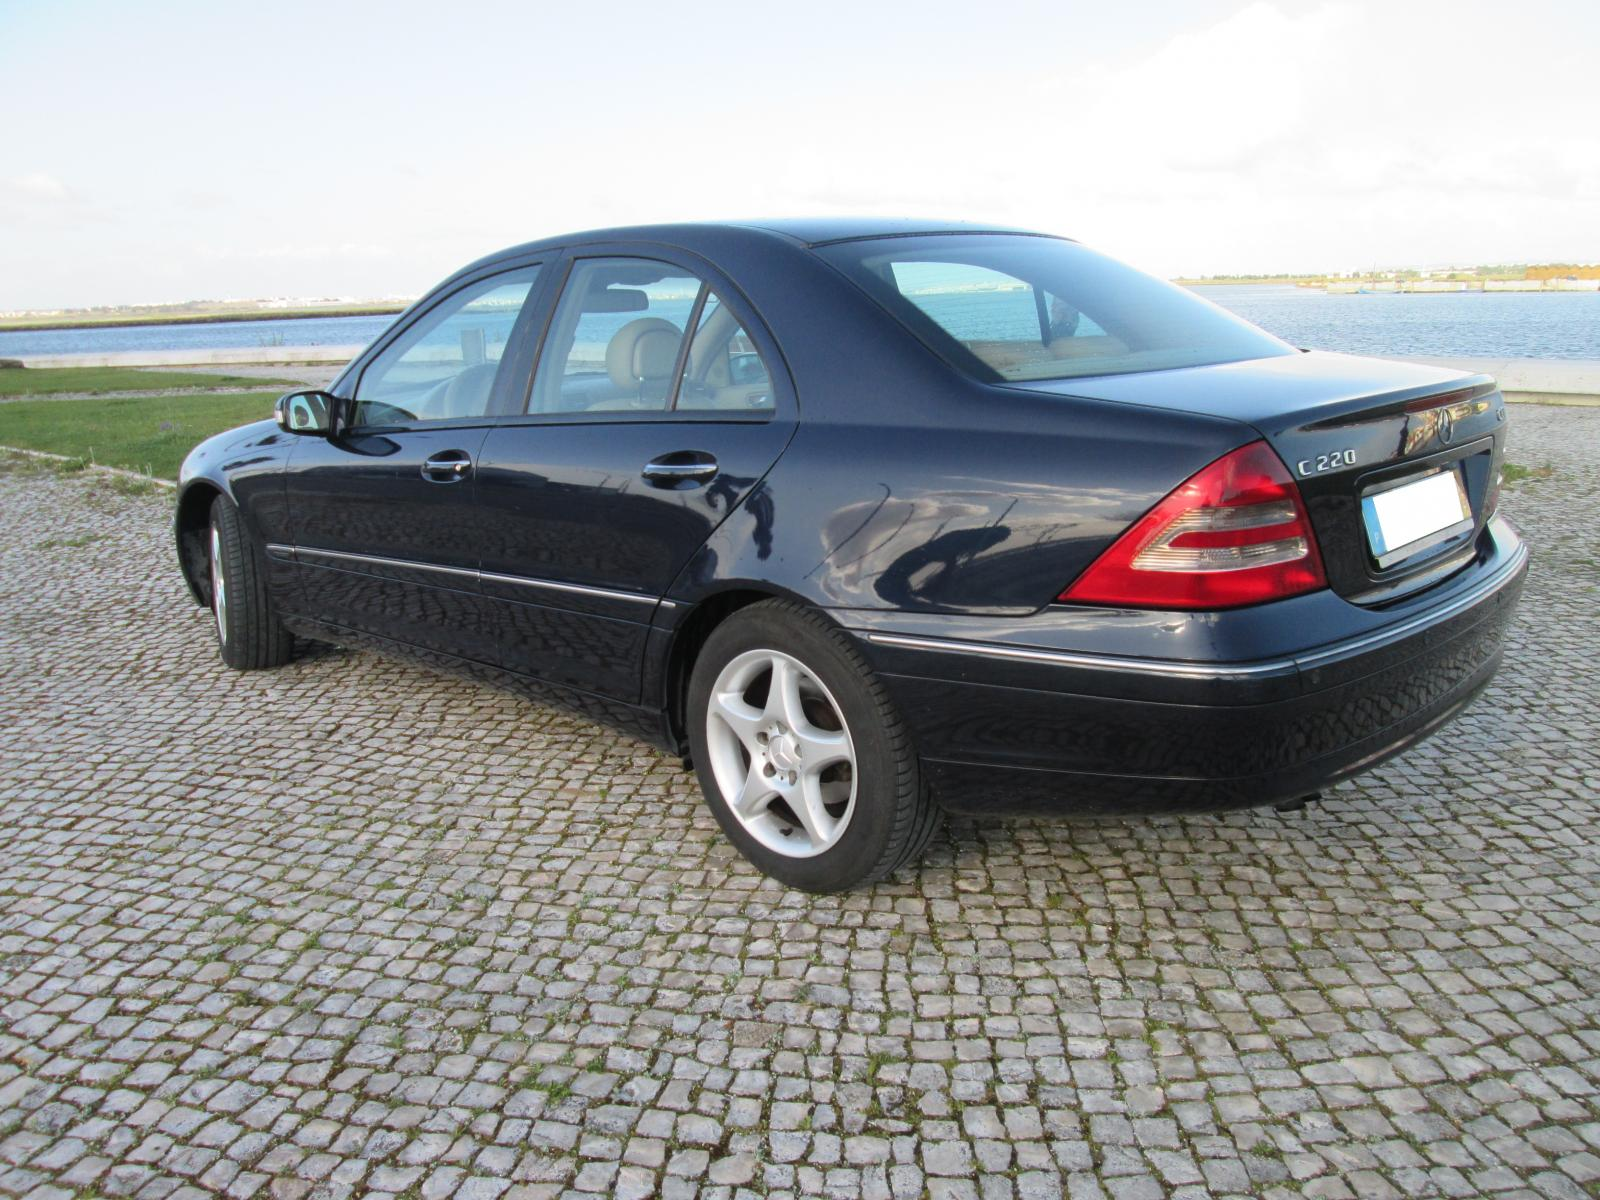 mercedes benz c 220 cdi elegance usado 2001 paulo sousa autom veis. Black Bedroom Furniture Sets. Home Design Ideas